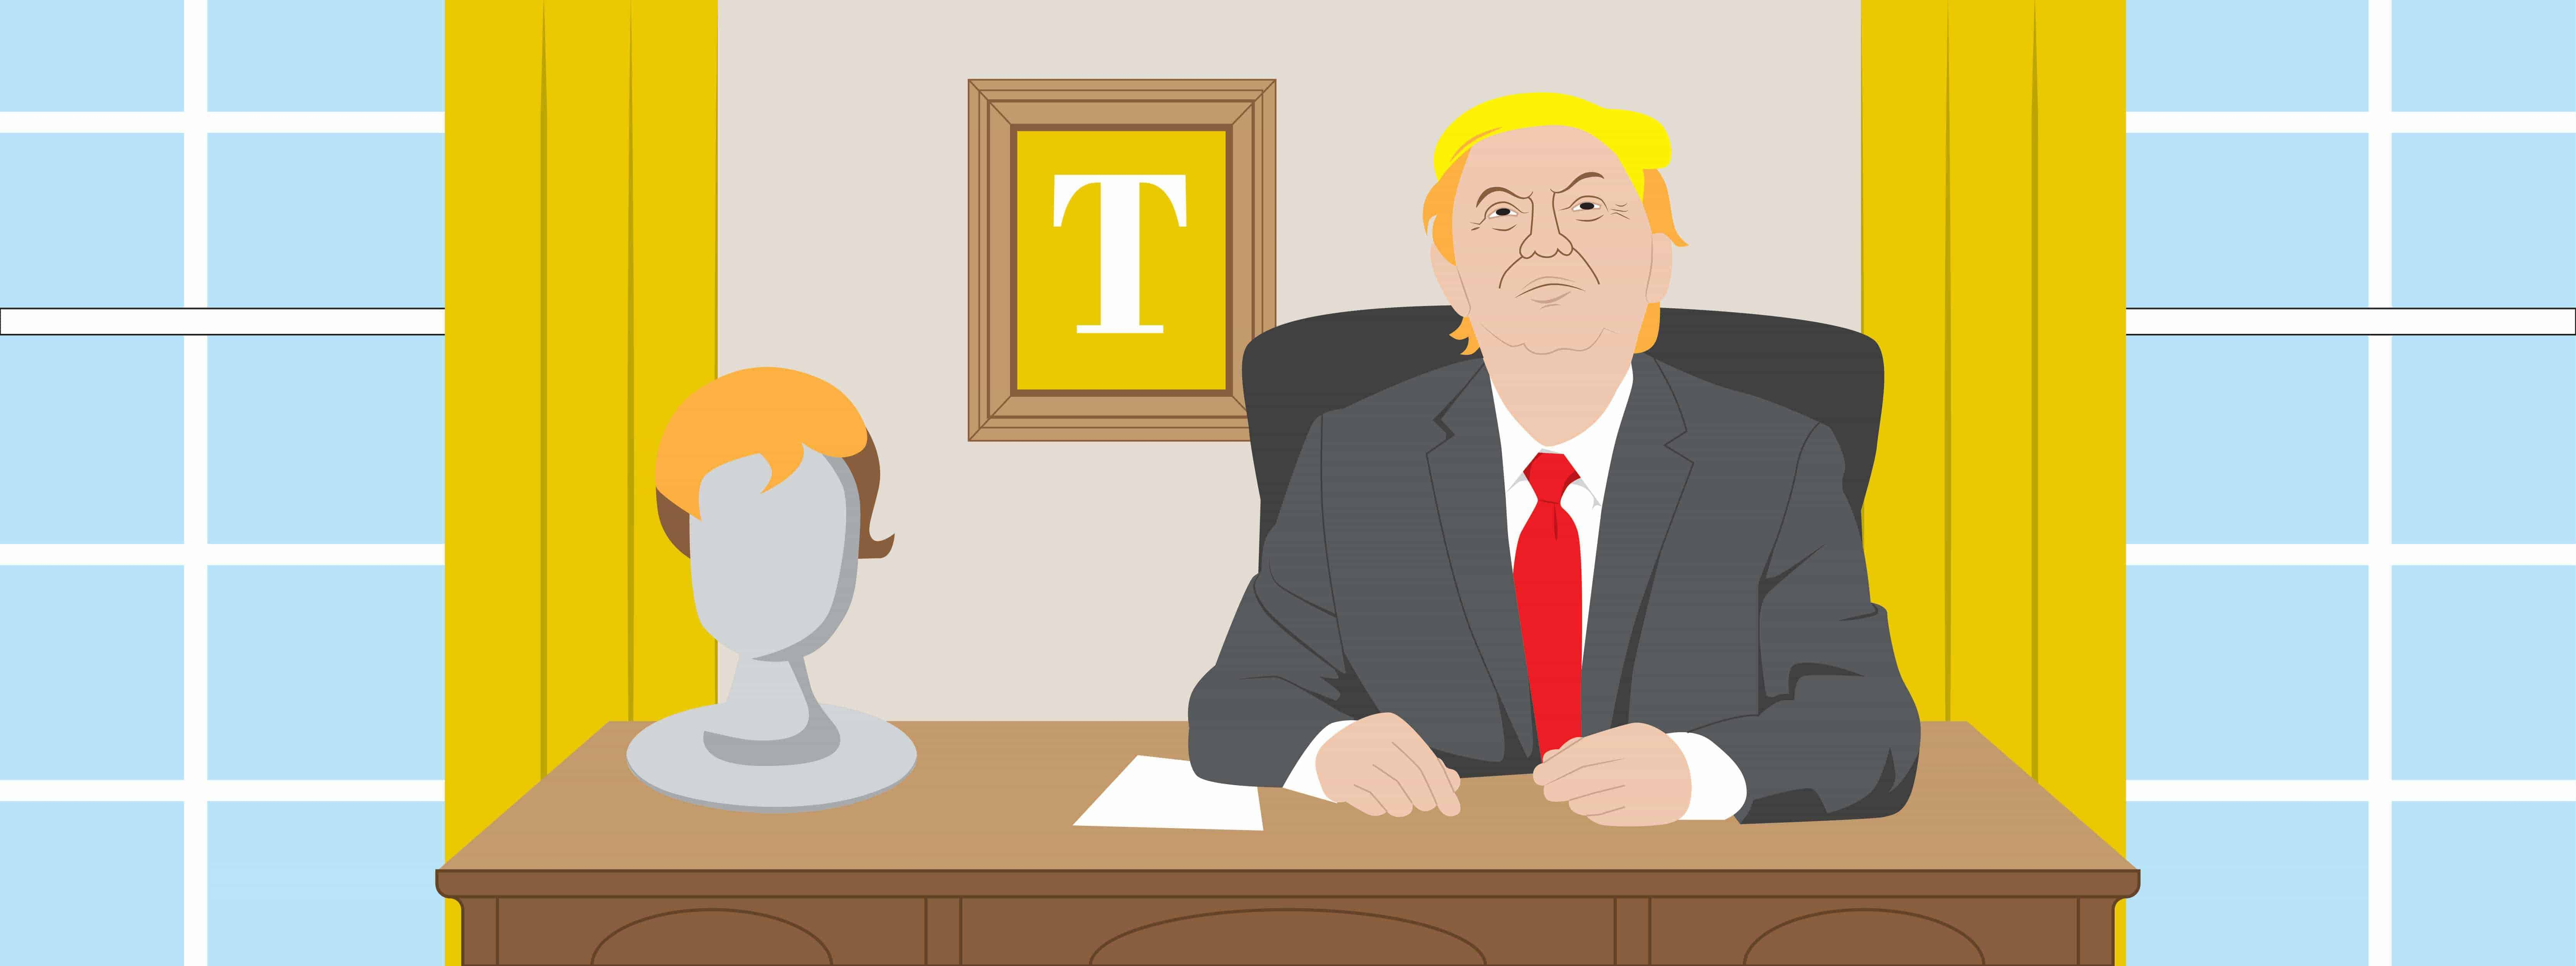 What the Oval Office will look like after the first 100 days of Donald Trump's presidency, including a bust of himself, gold drapes and a golden T painting (illustrated)